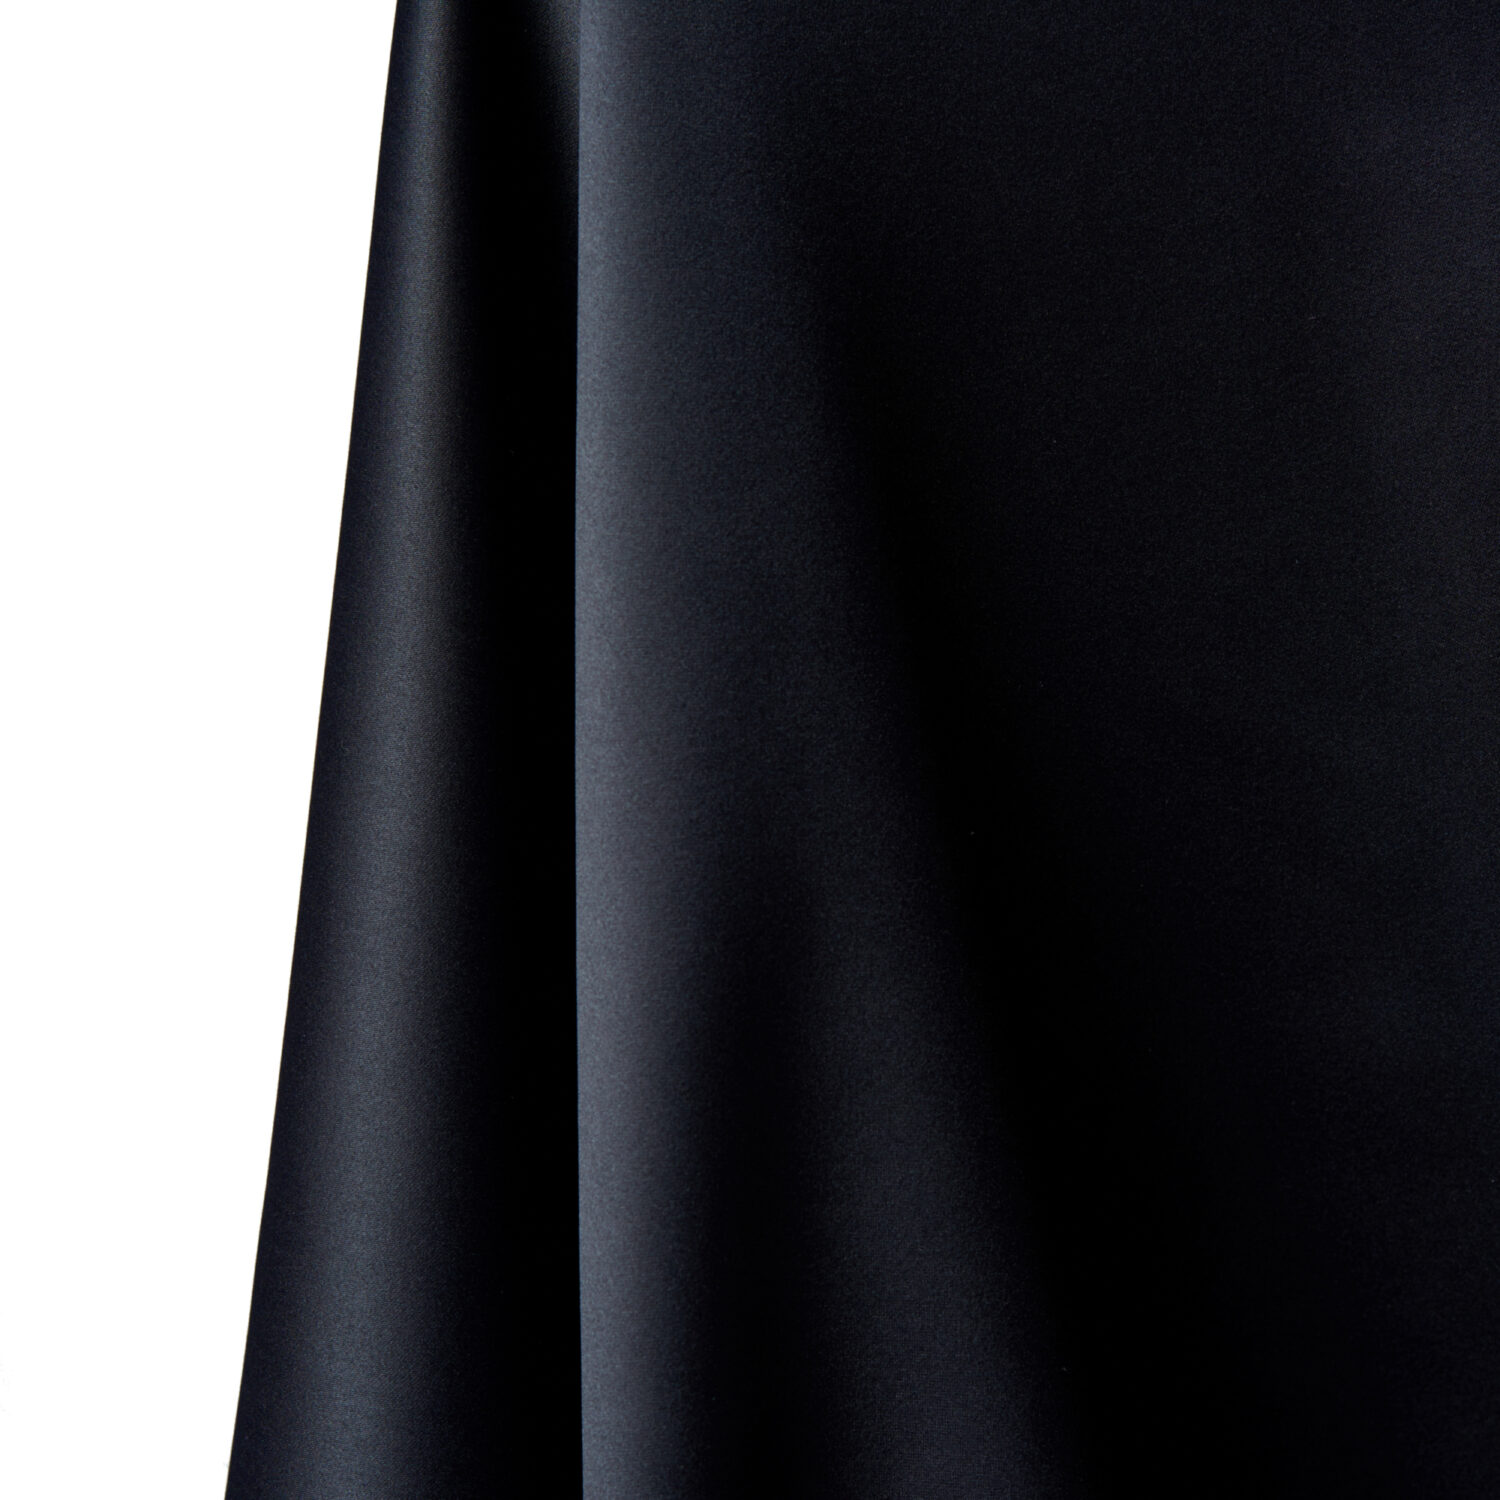 8ft Round Tablecloth - Black - Event Artillery